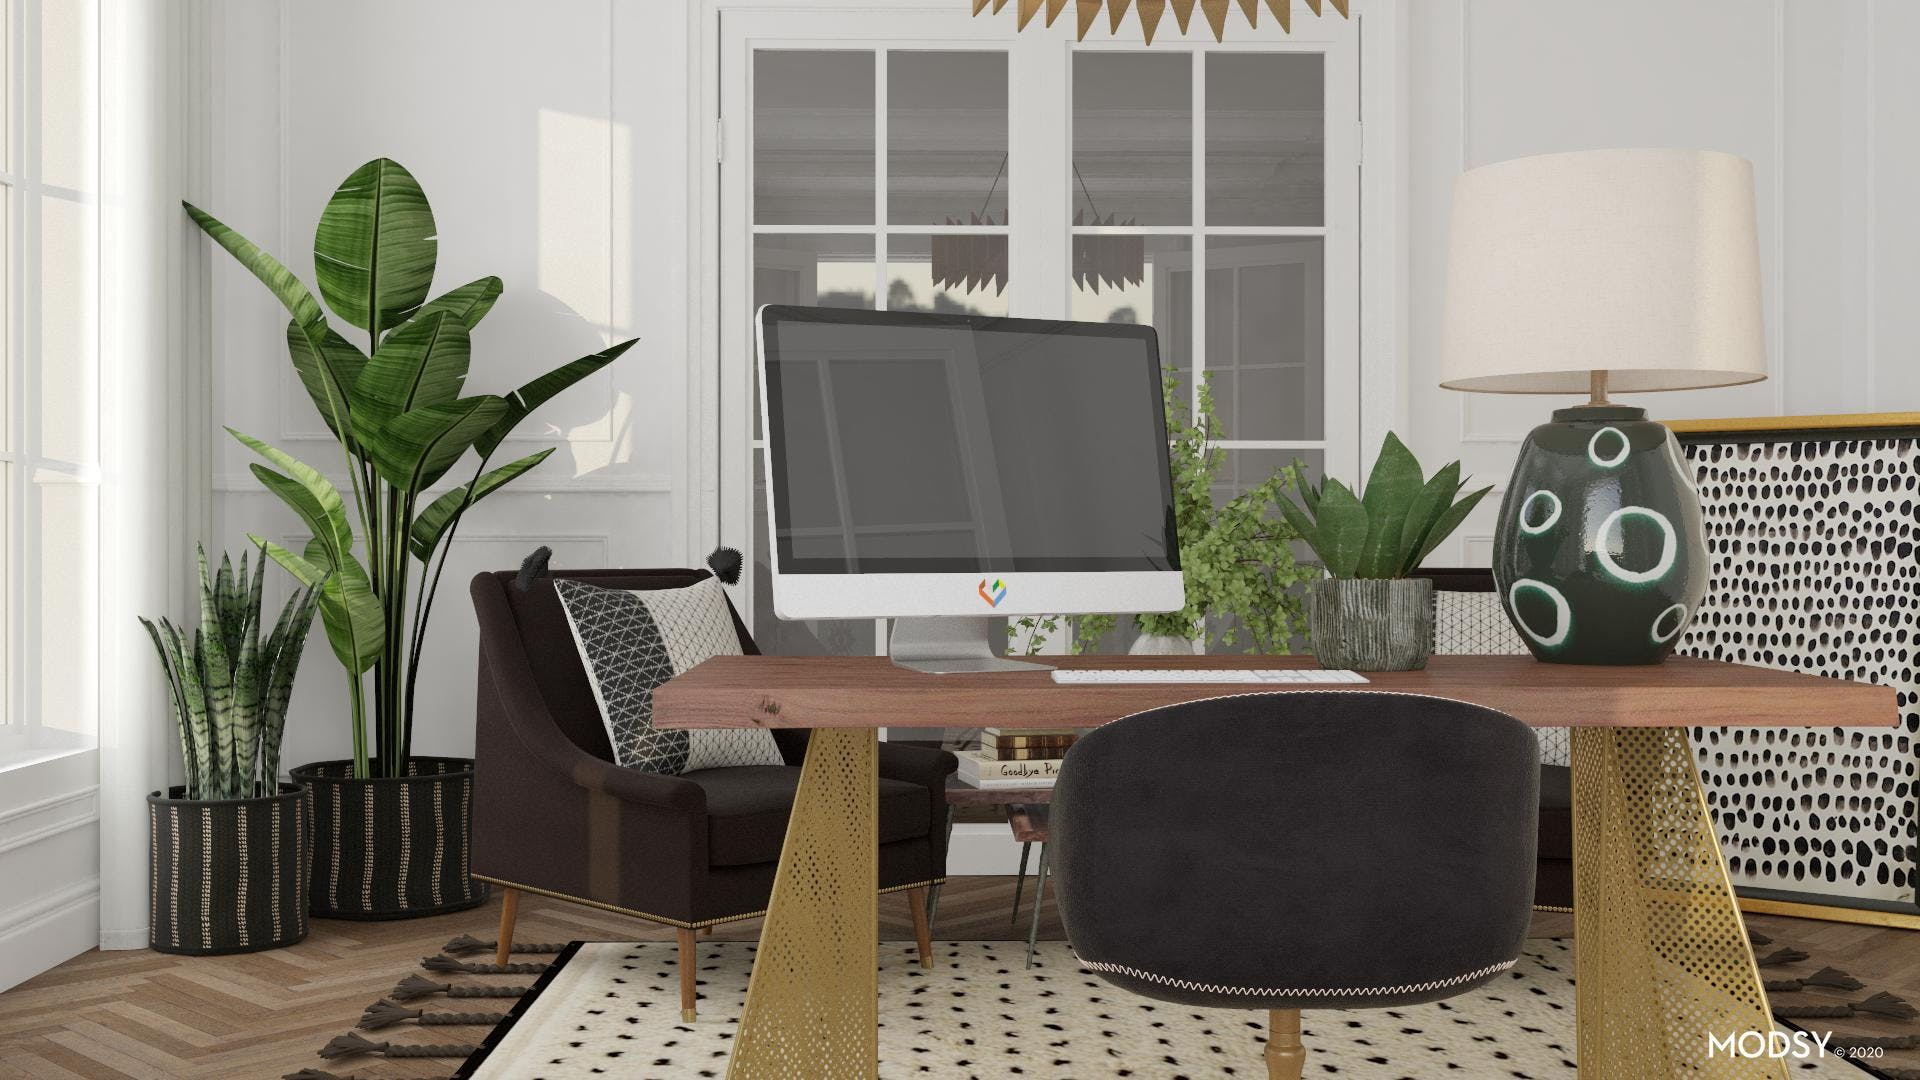 Textured Layers In An Eclectic Home Office